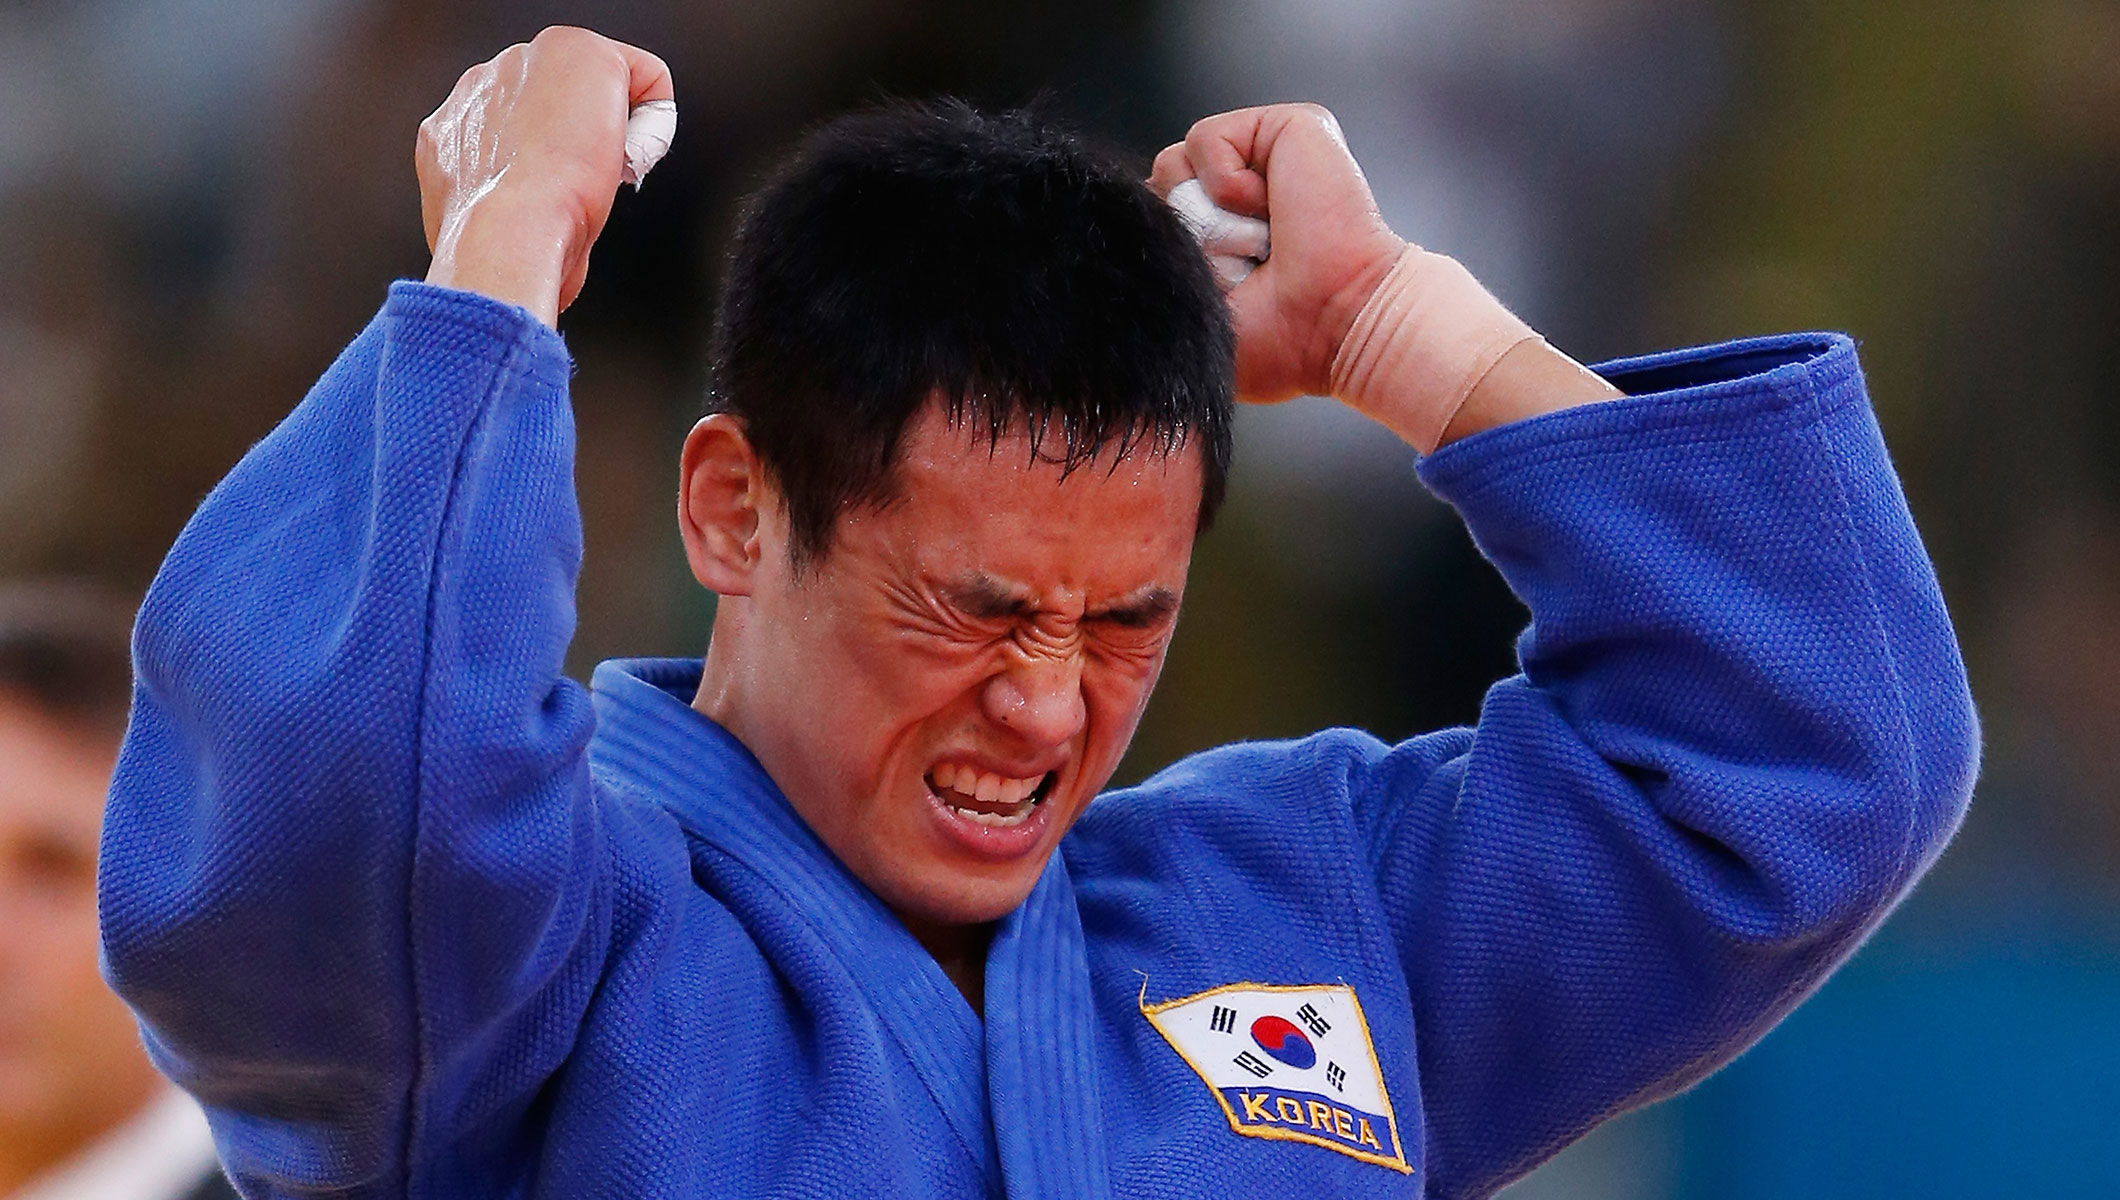 Dae-Nam Song of Korea celebrates winning the gold medal during the Men's -90 kg Judo on Day 5 of the London 2012 Olympic Games